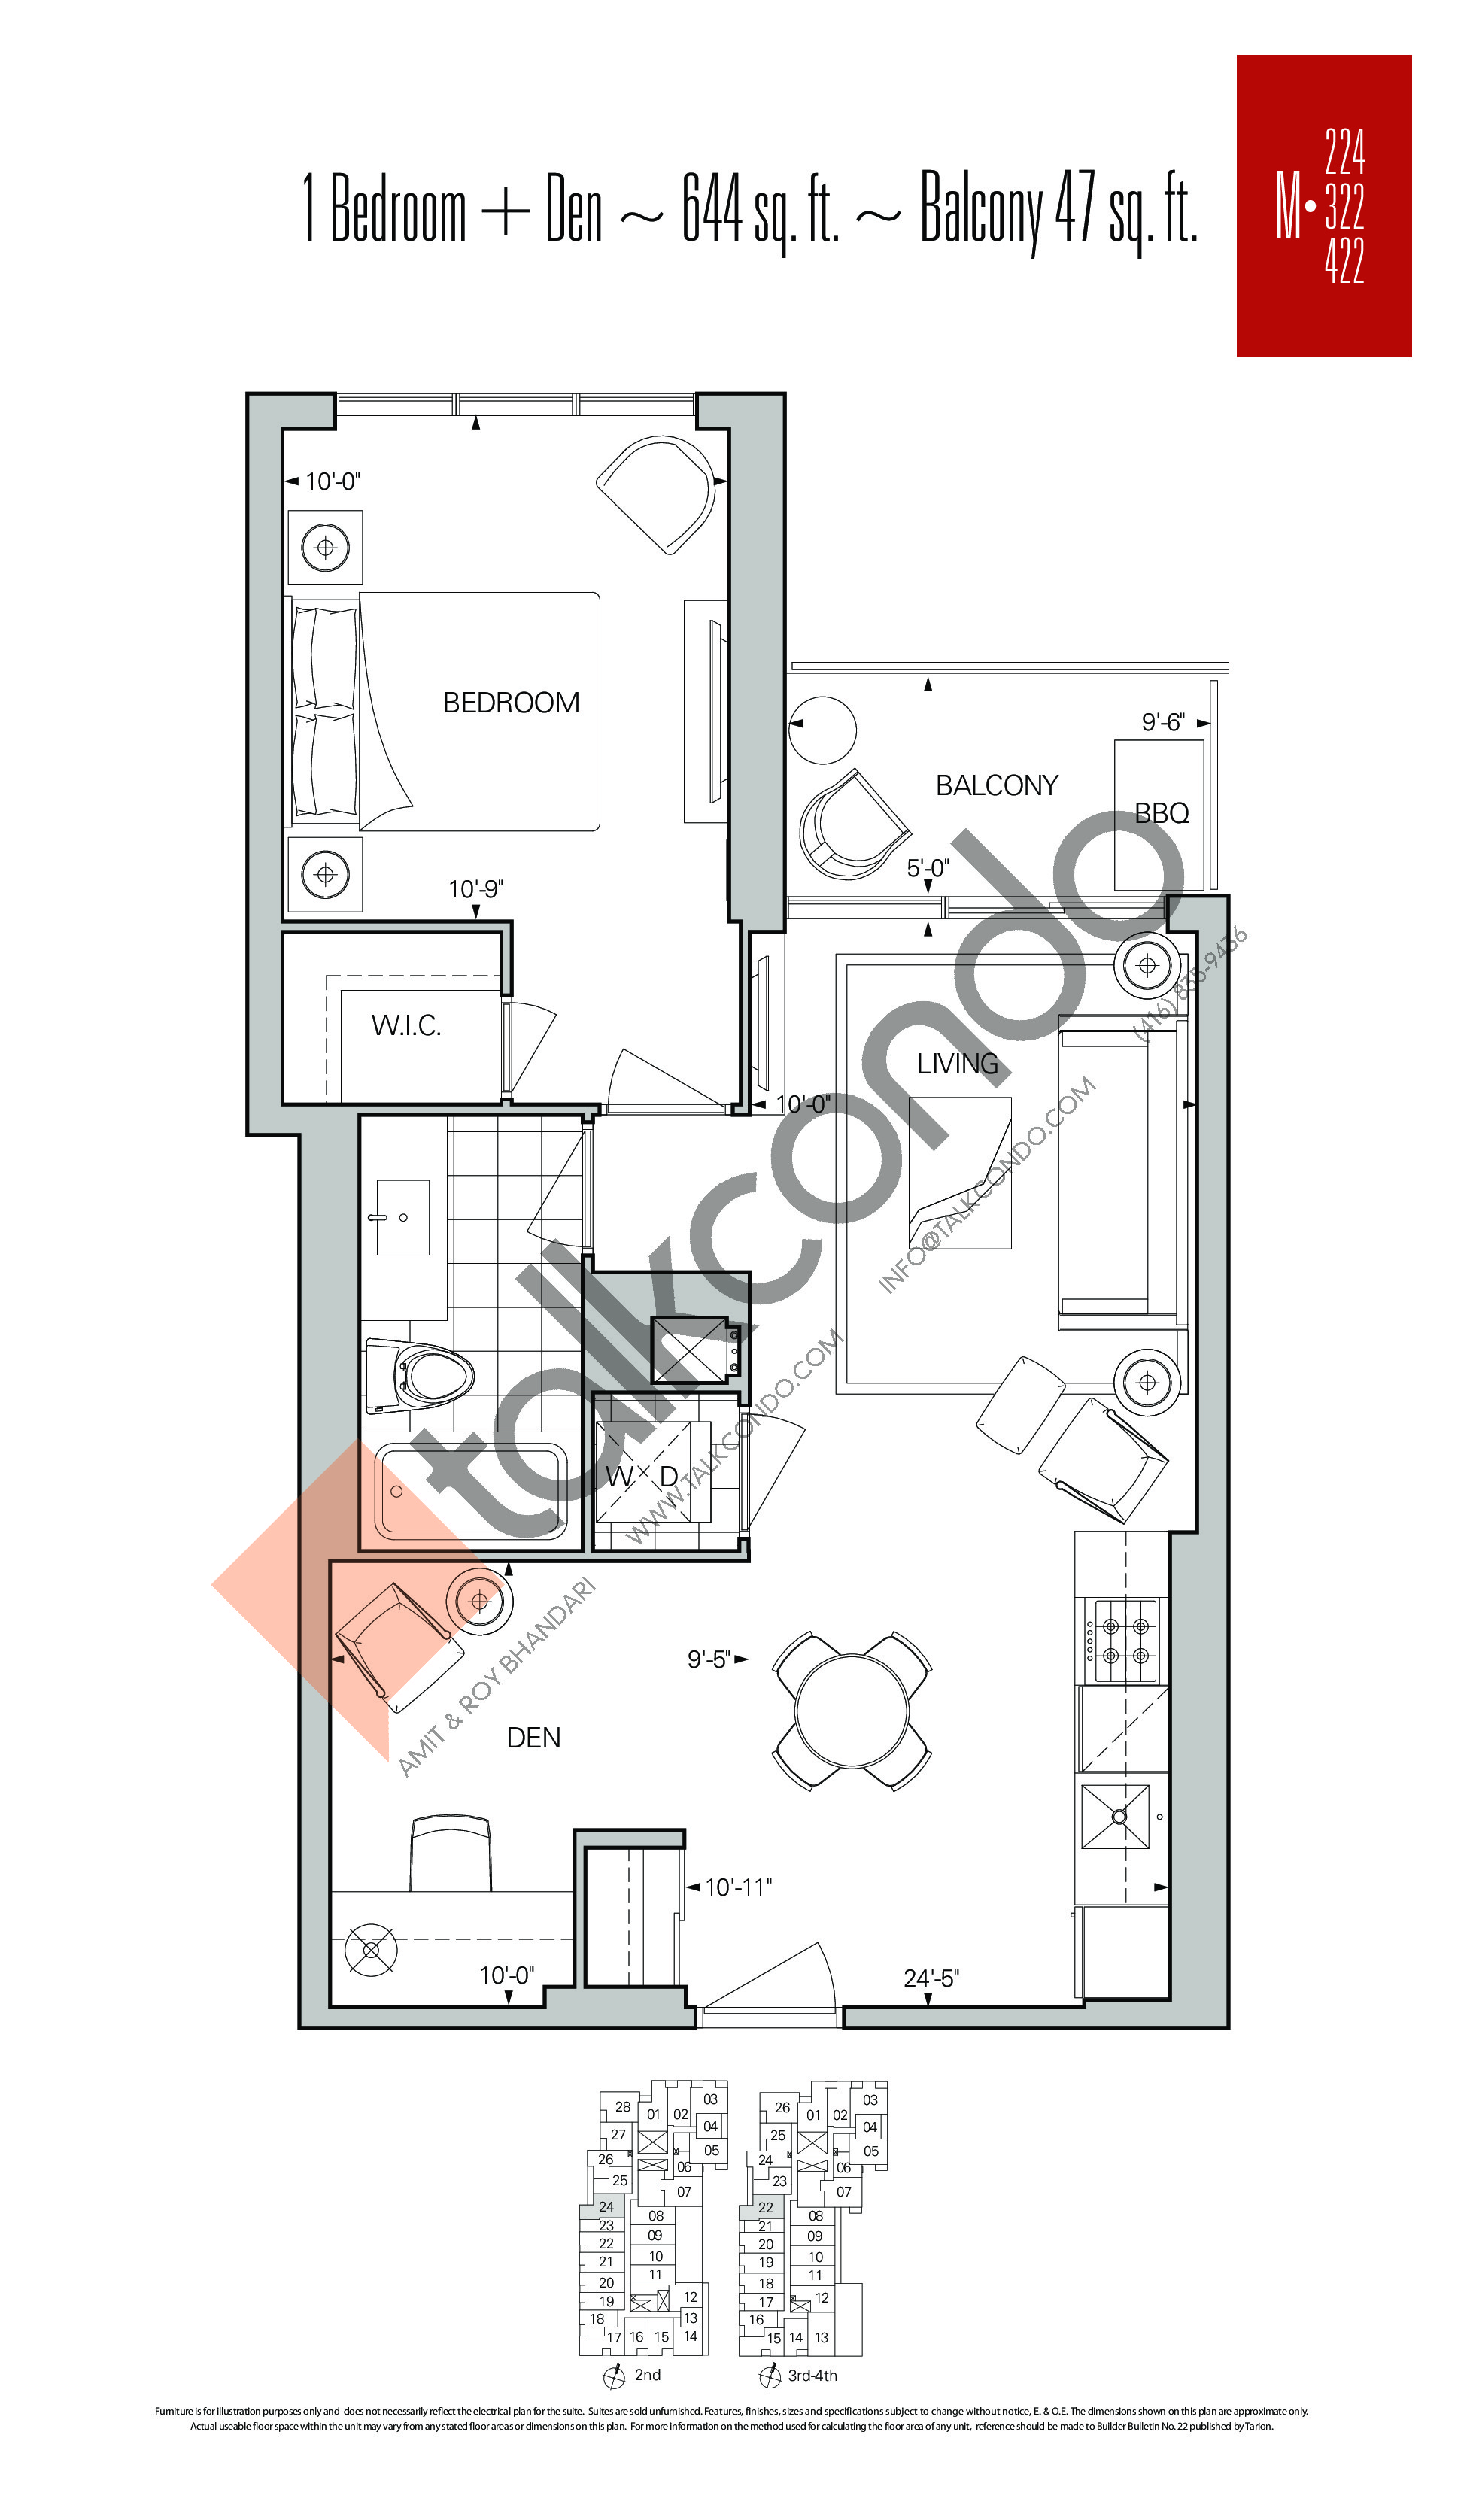 M-224 | M-322 | M-422 Floor Plan at Rise Condos - 644 sq.ft